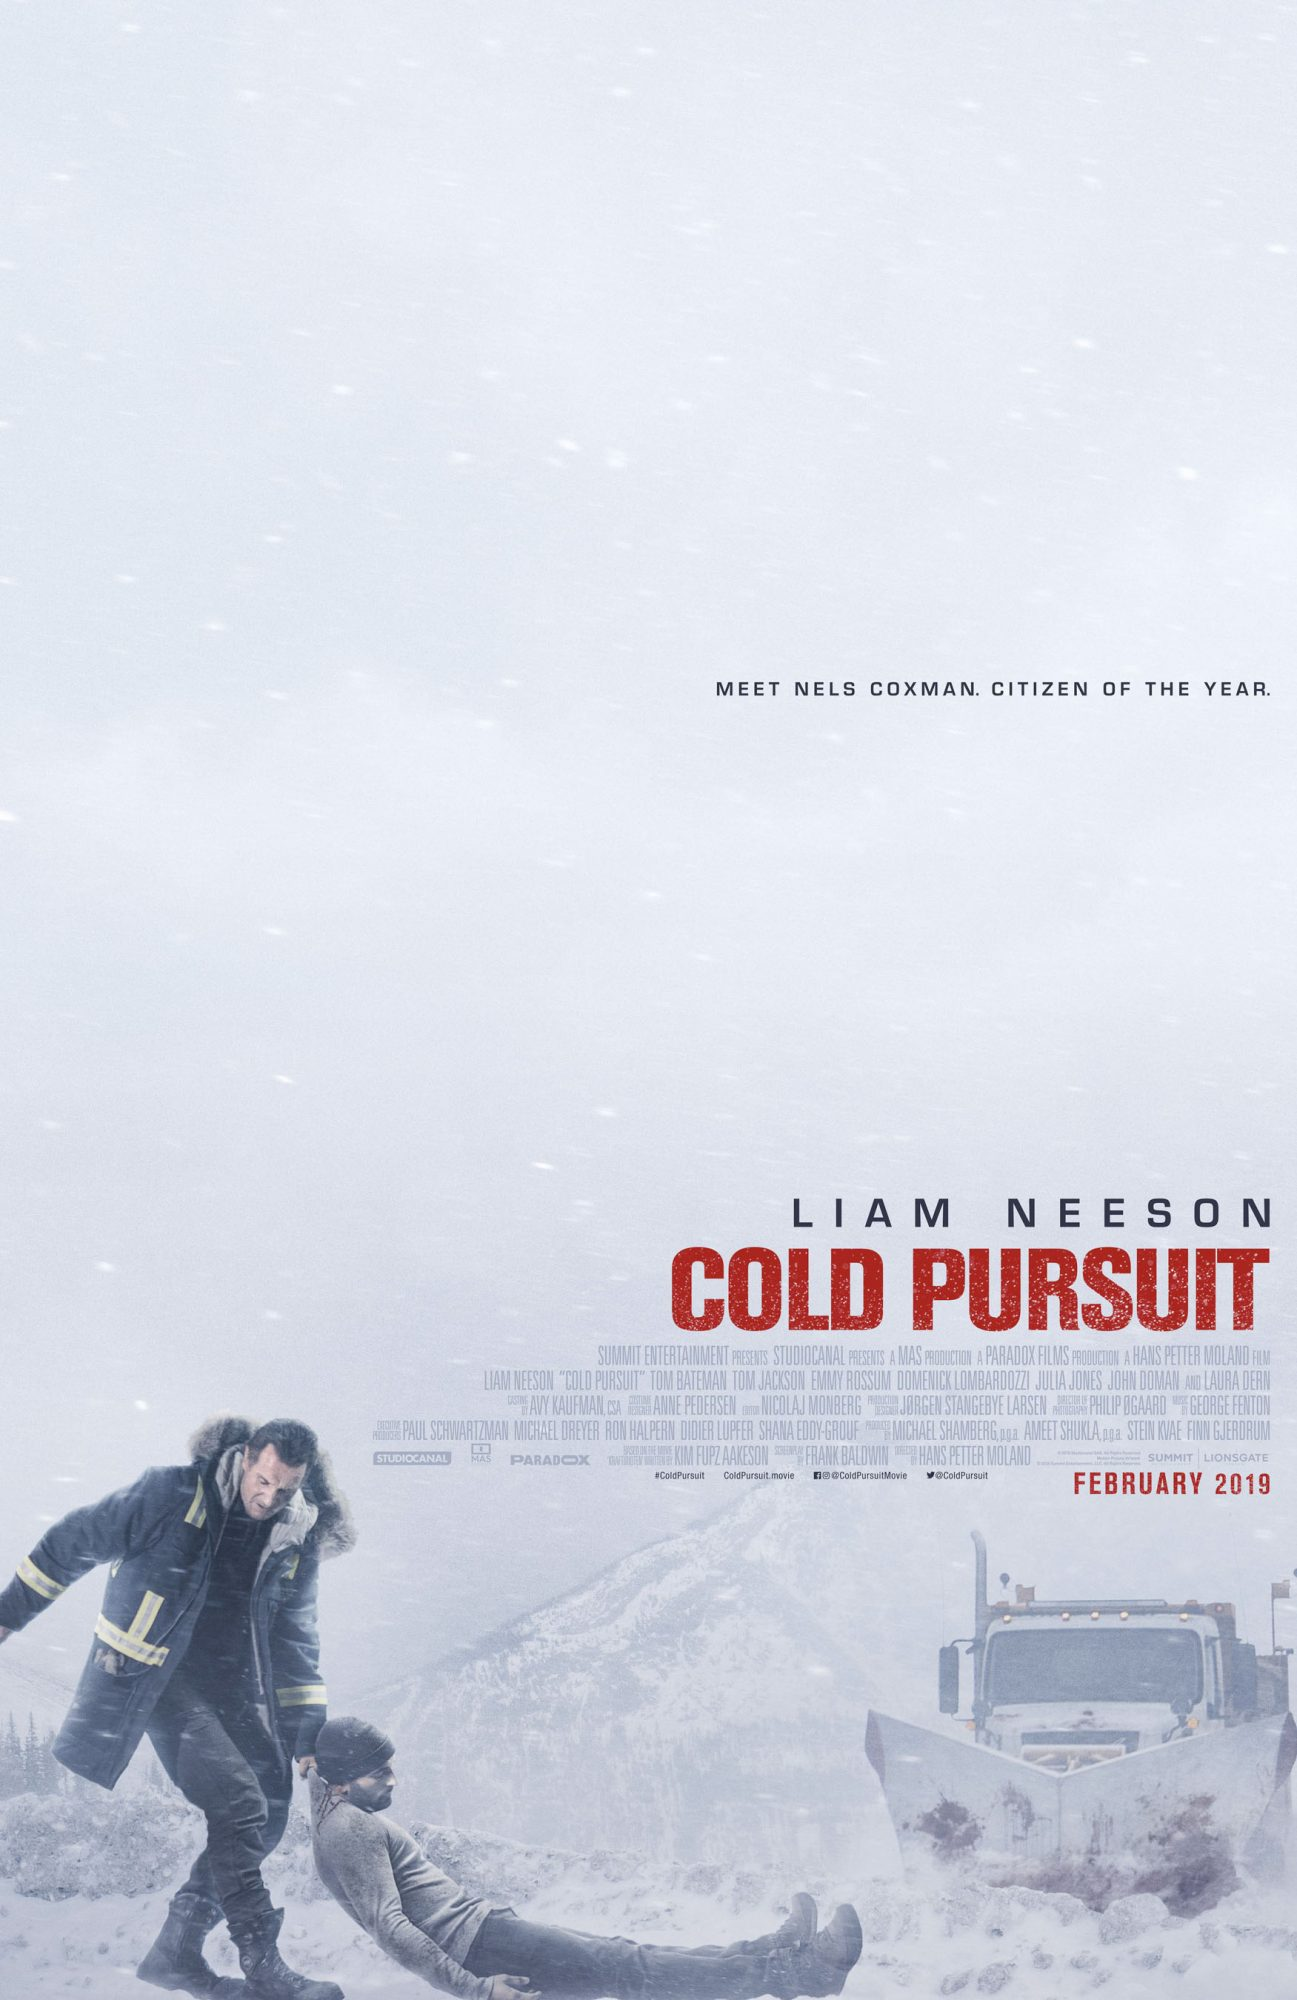 fin02_coldpursuit_1sht_payoff_vf